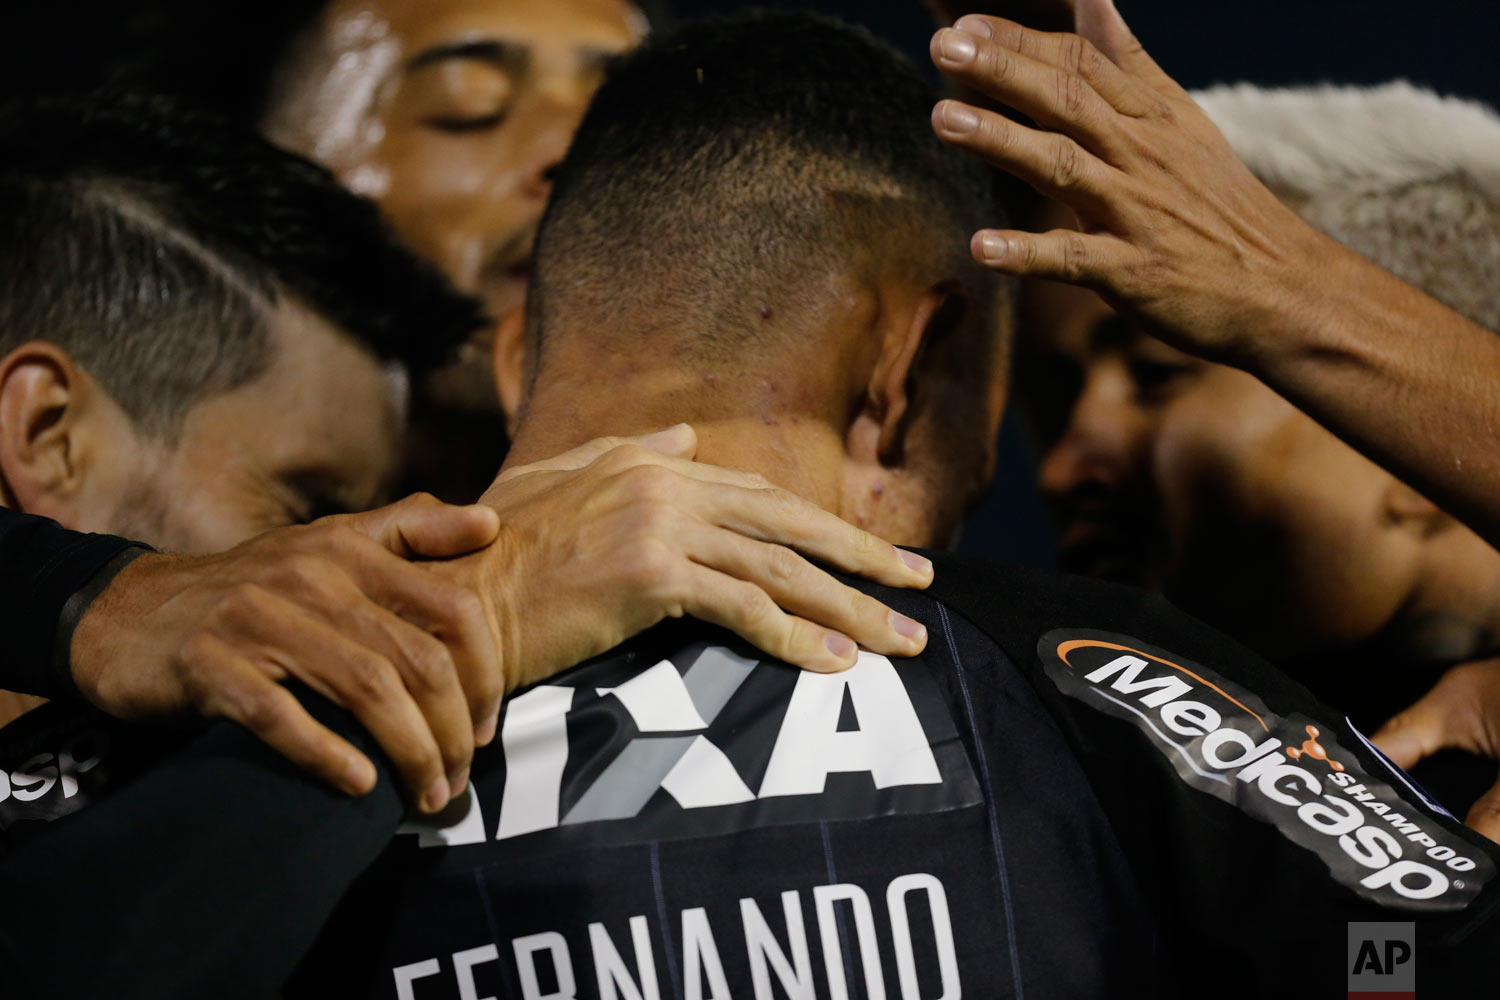 Luiz Fernando of Brazil's Botafogo celebrates his goal against Paraguay's Nacional during a Copa Sudamericana soccer game in Asuncion, Paraguay, Aug. 1, 2018. (AP Photo/Jorge Saenz)